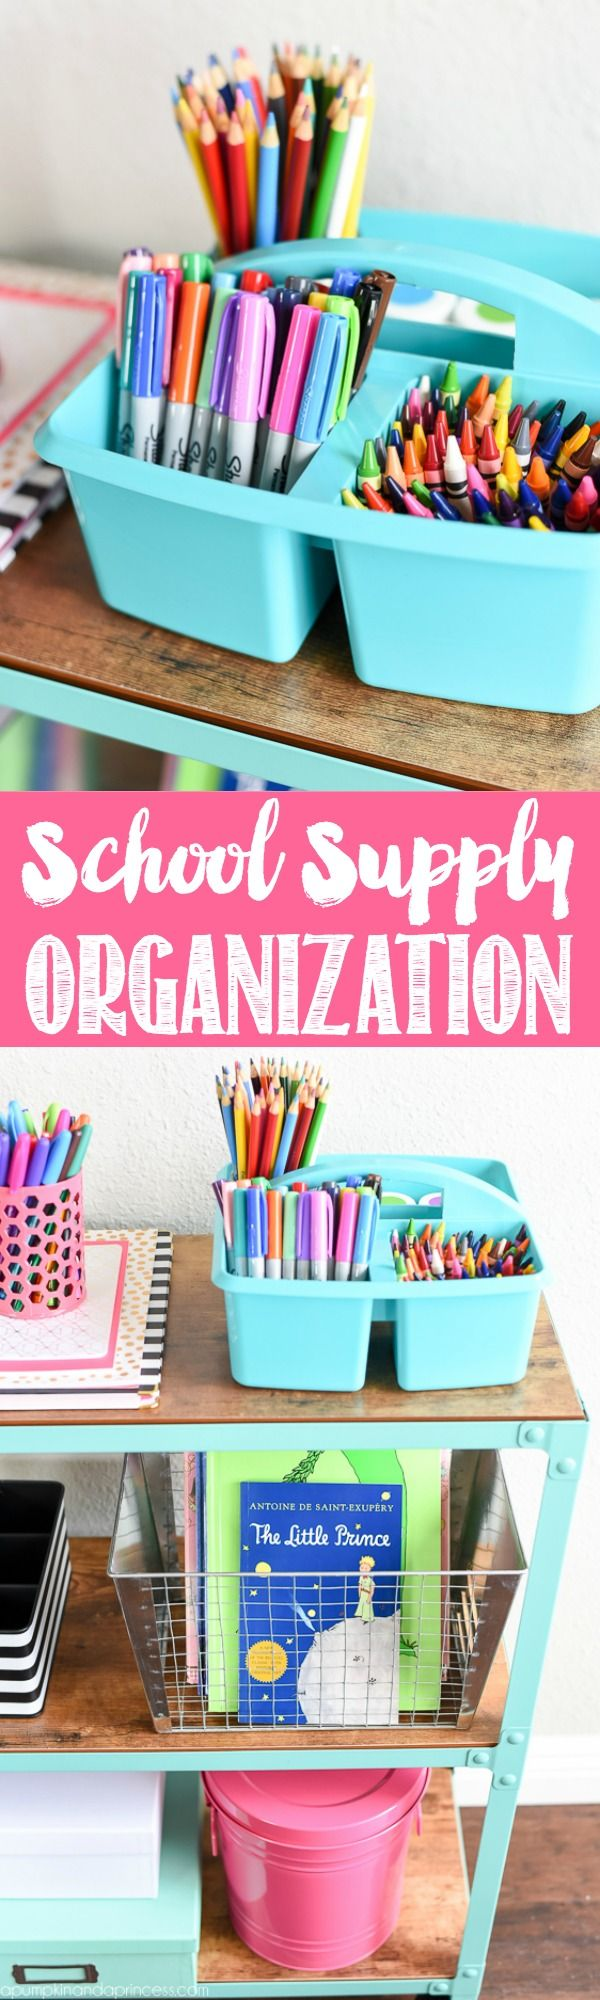 School Supply Organization Cart from MichaelsMakers  A Pumpkin And A Princess - easy organization ideas for art and school supplies